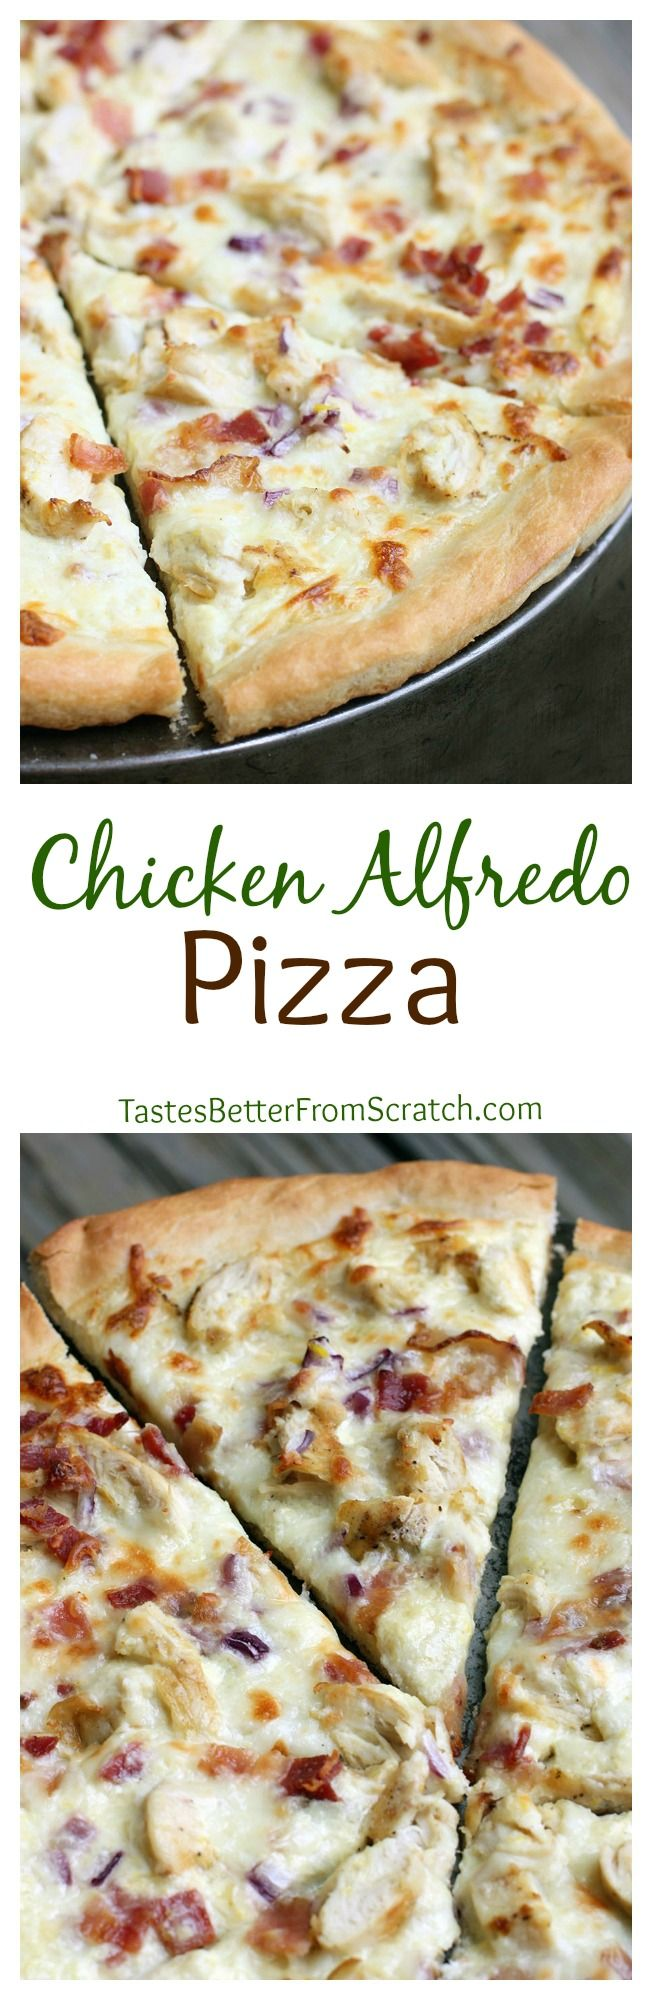 Chicken Alfredo Pizza on MyRecipeMagic.com